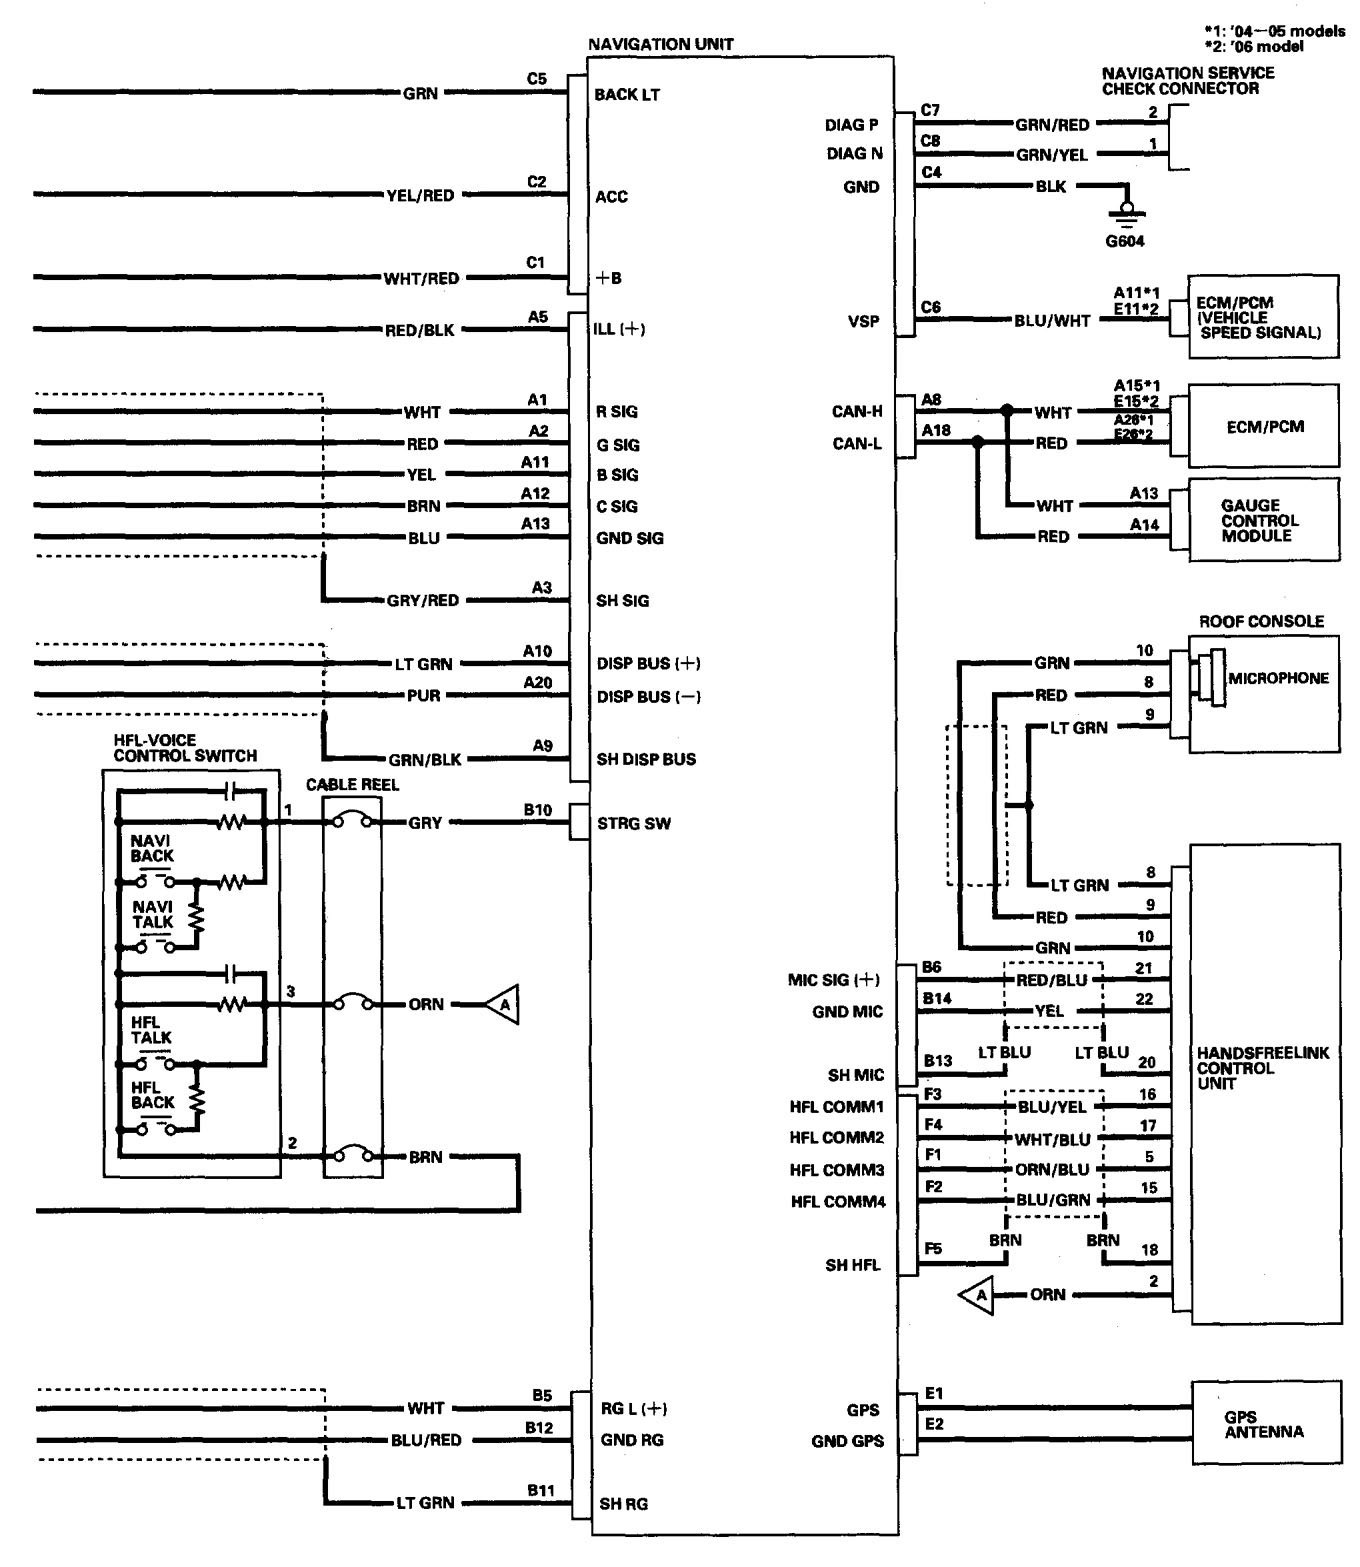 VC_8711] Acura Cl Power Seat Wiring Diagram Acura Free Engine Image For  User Schematic WiringXolia Inama Mohammedshrine Librar Wiring 101